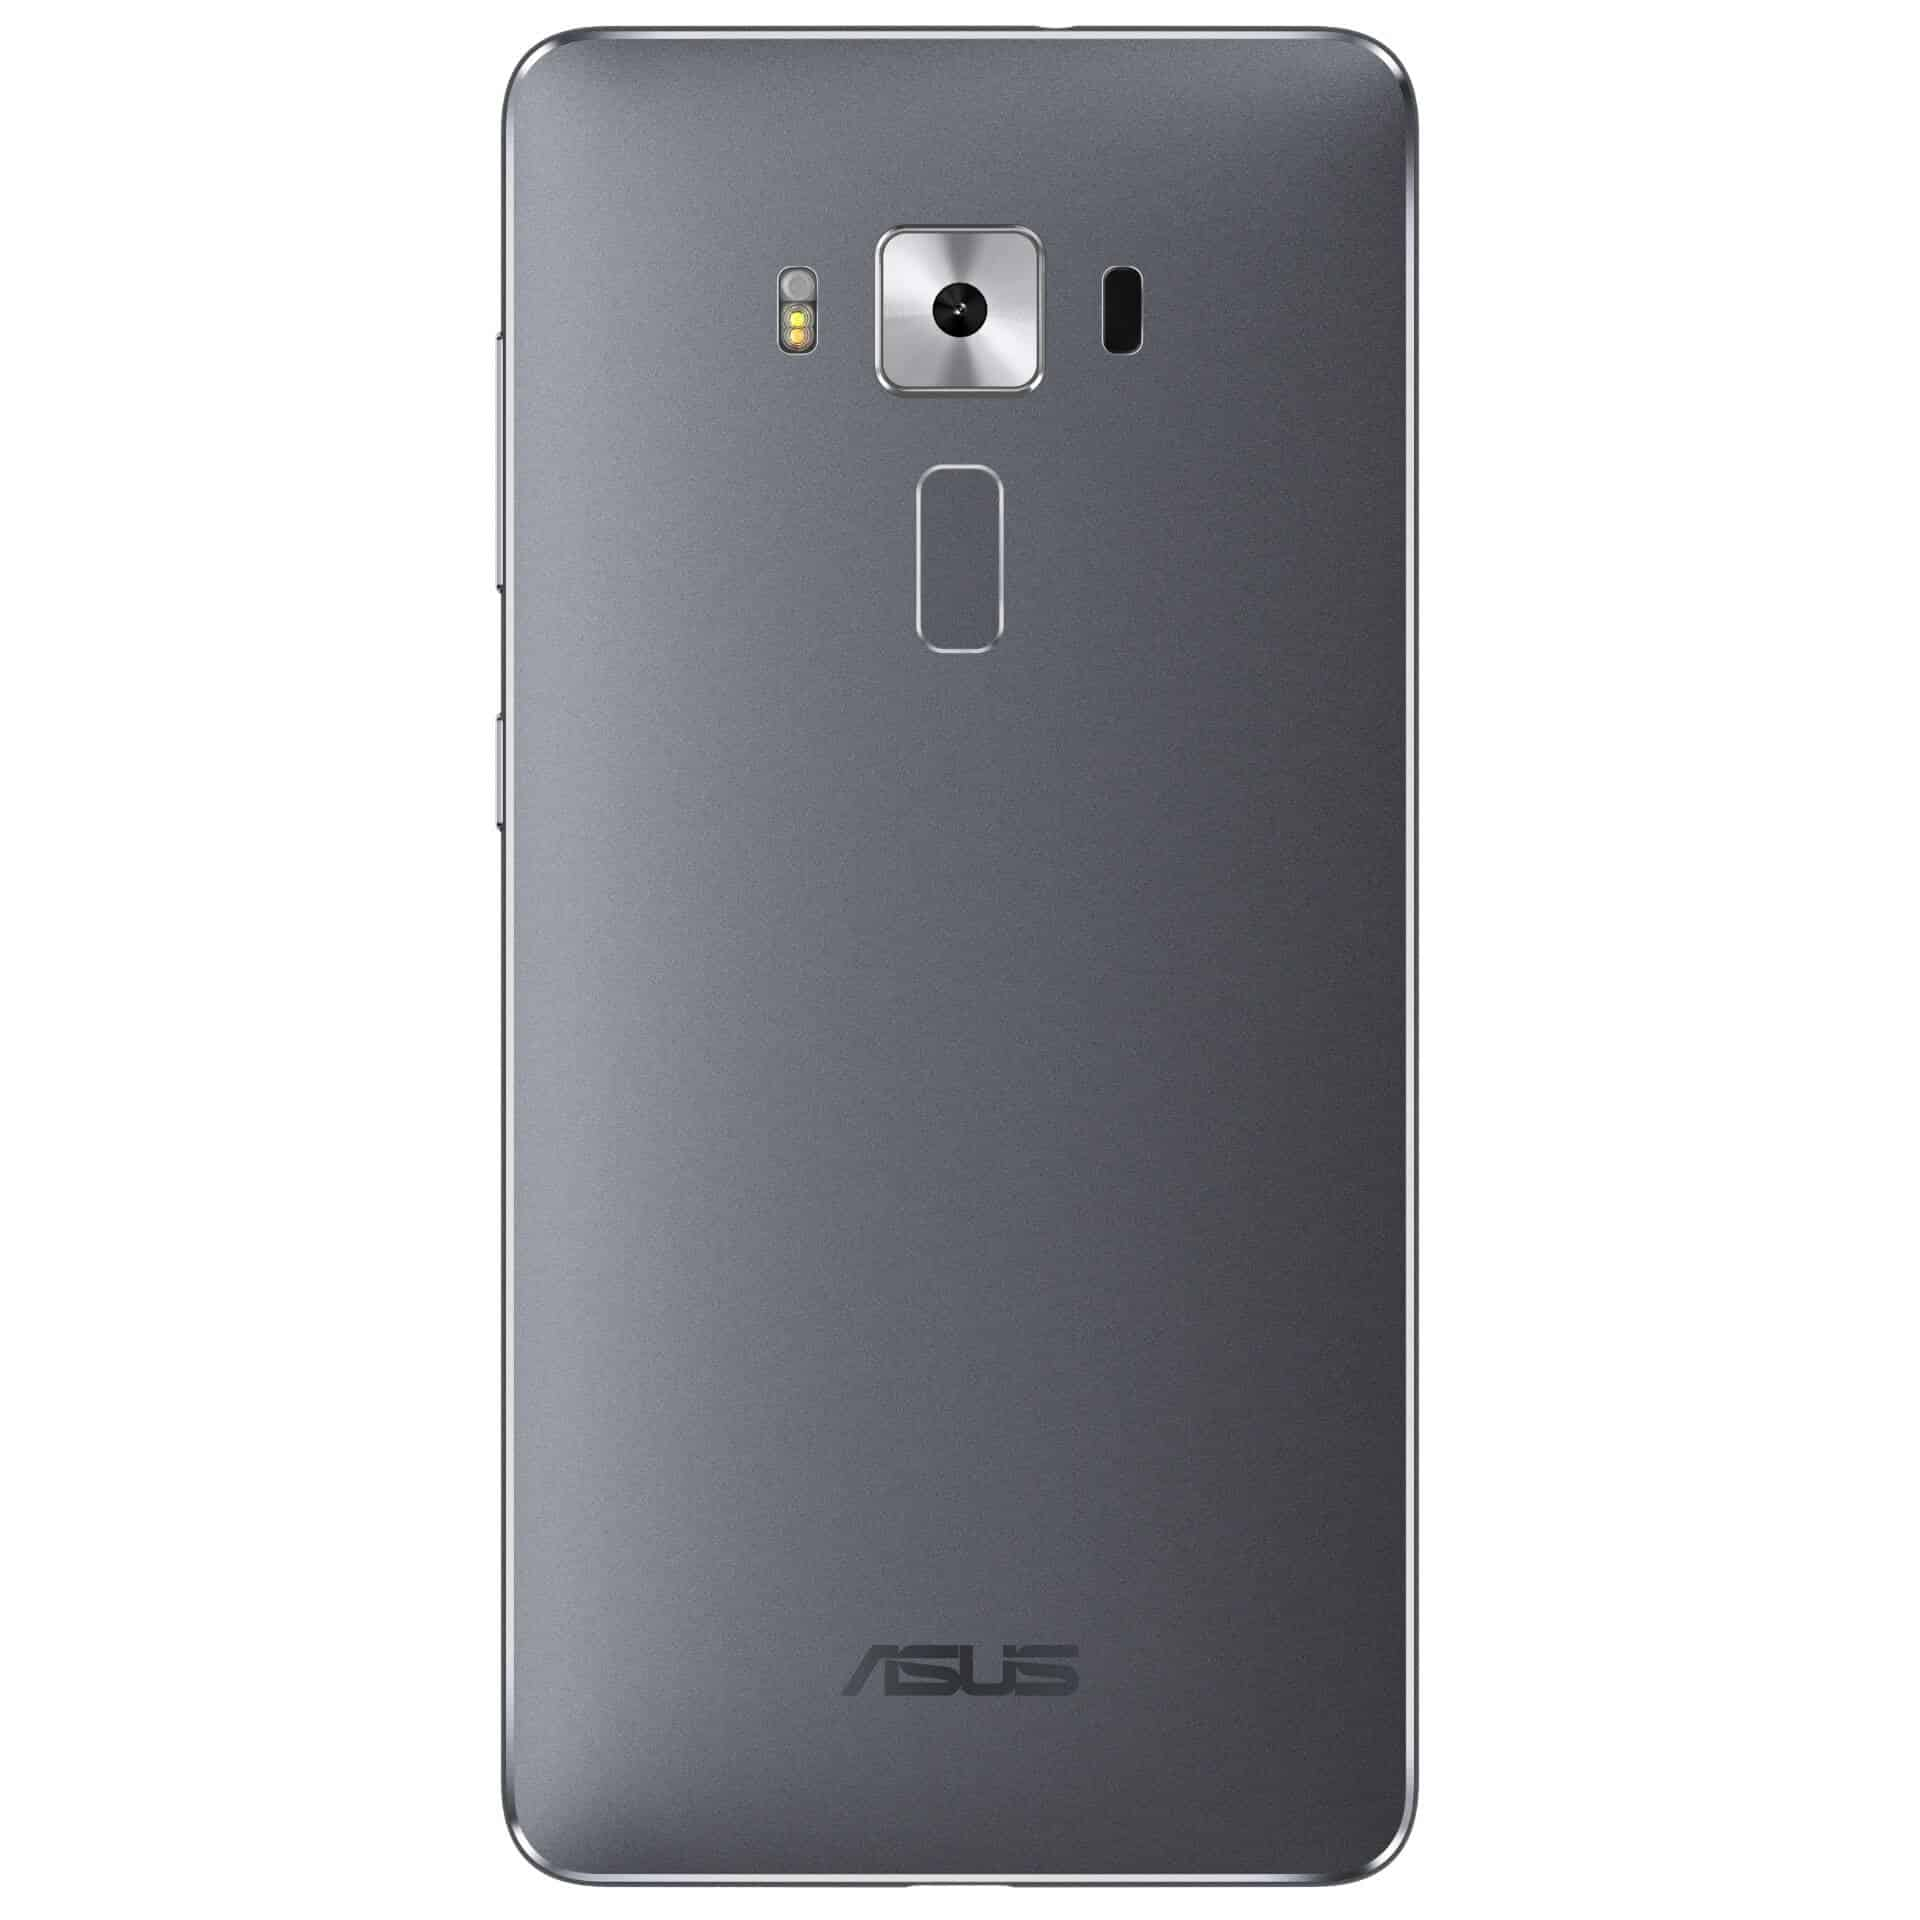 asus unveils zenfone 3 zenfone 3 ultra zenfone 3 deluxe. Black Bedroom Furniture Sets. Home Design Ideas